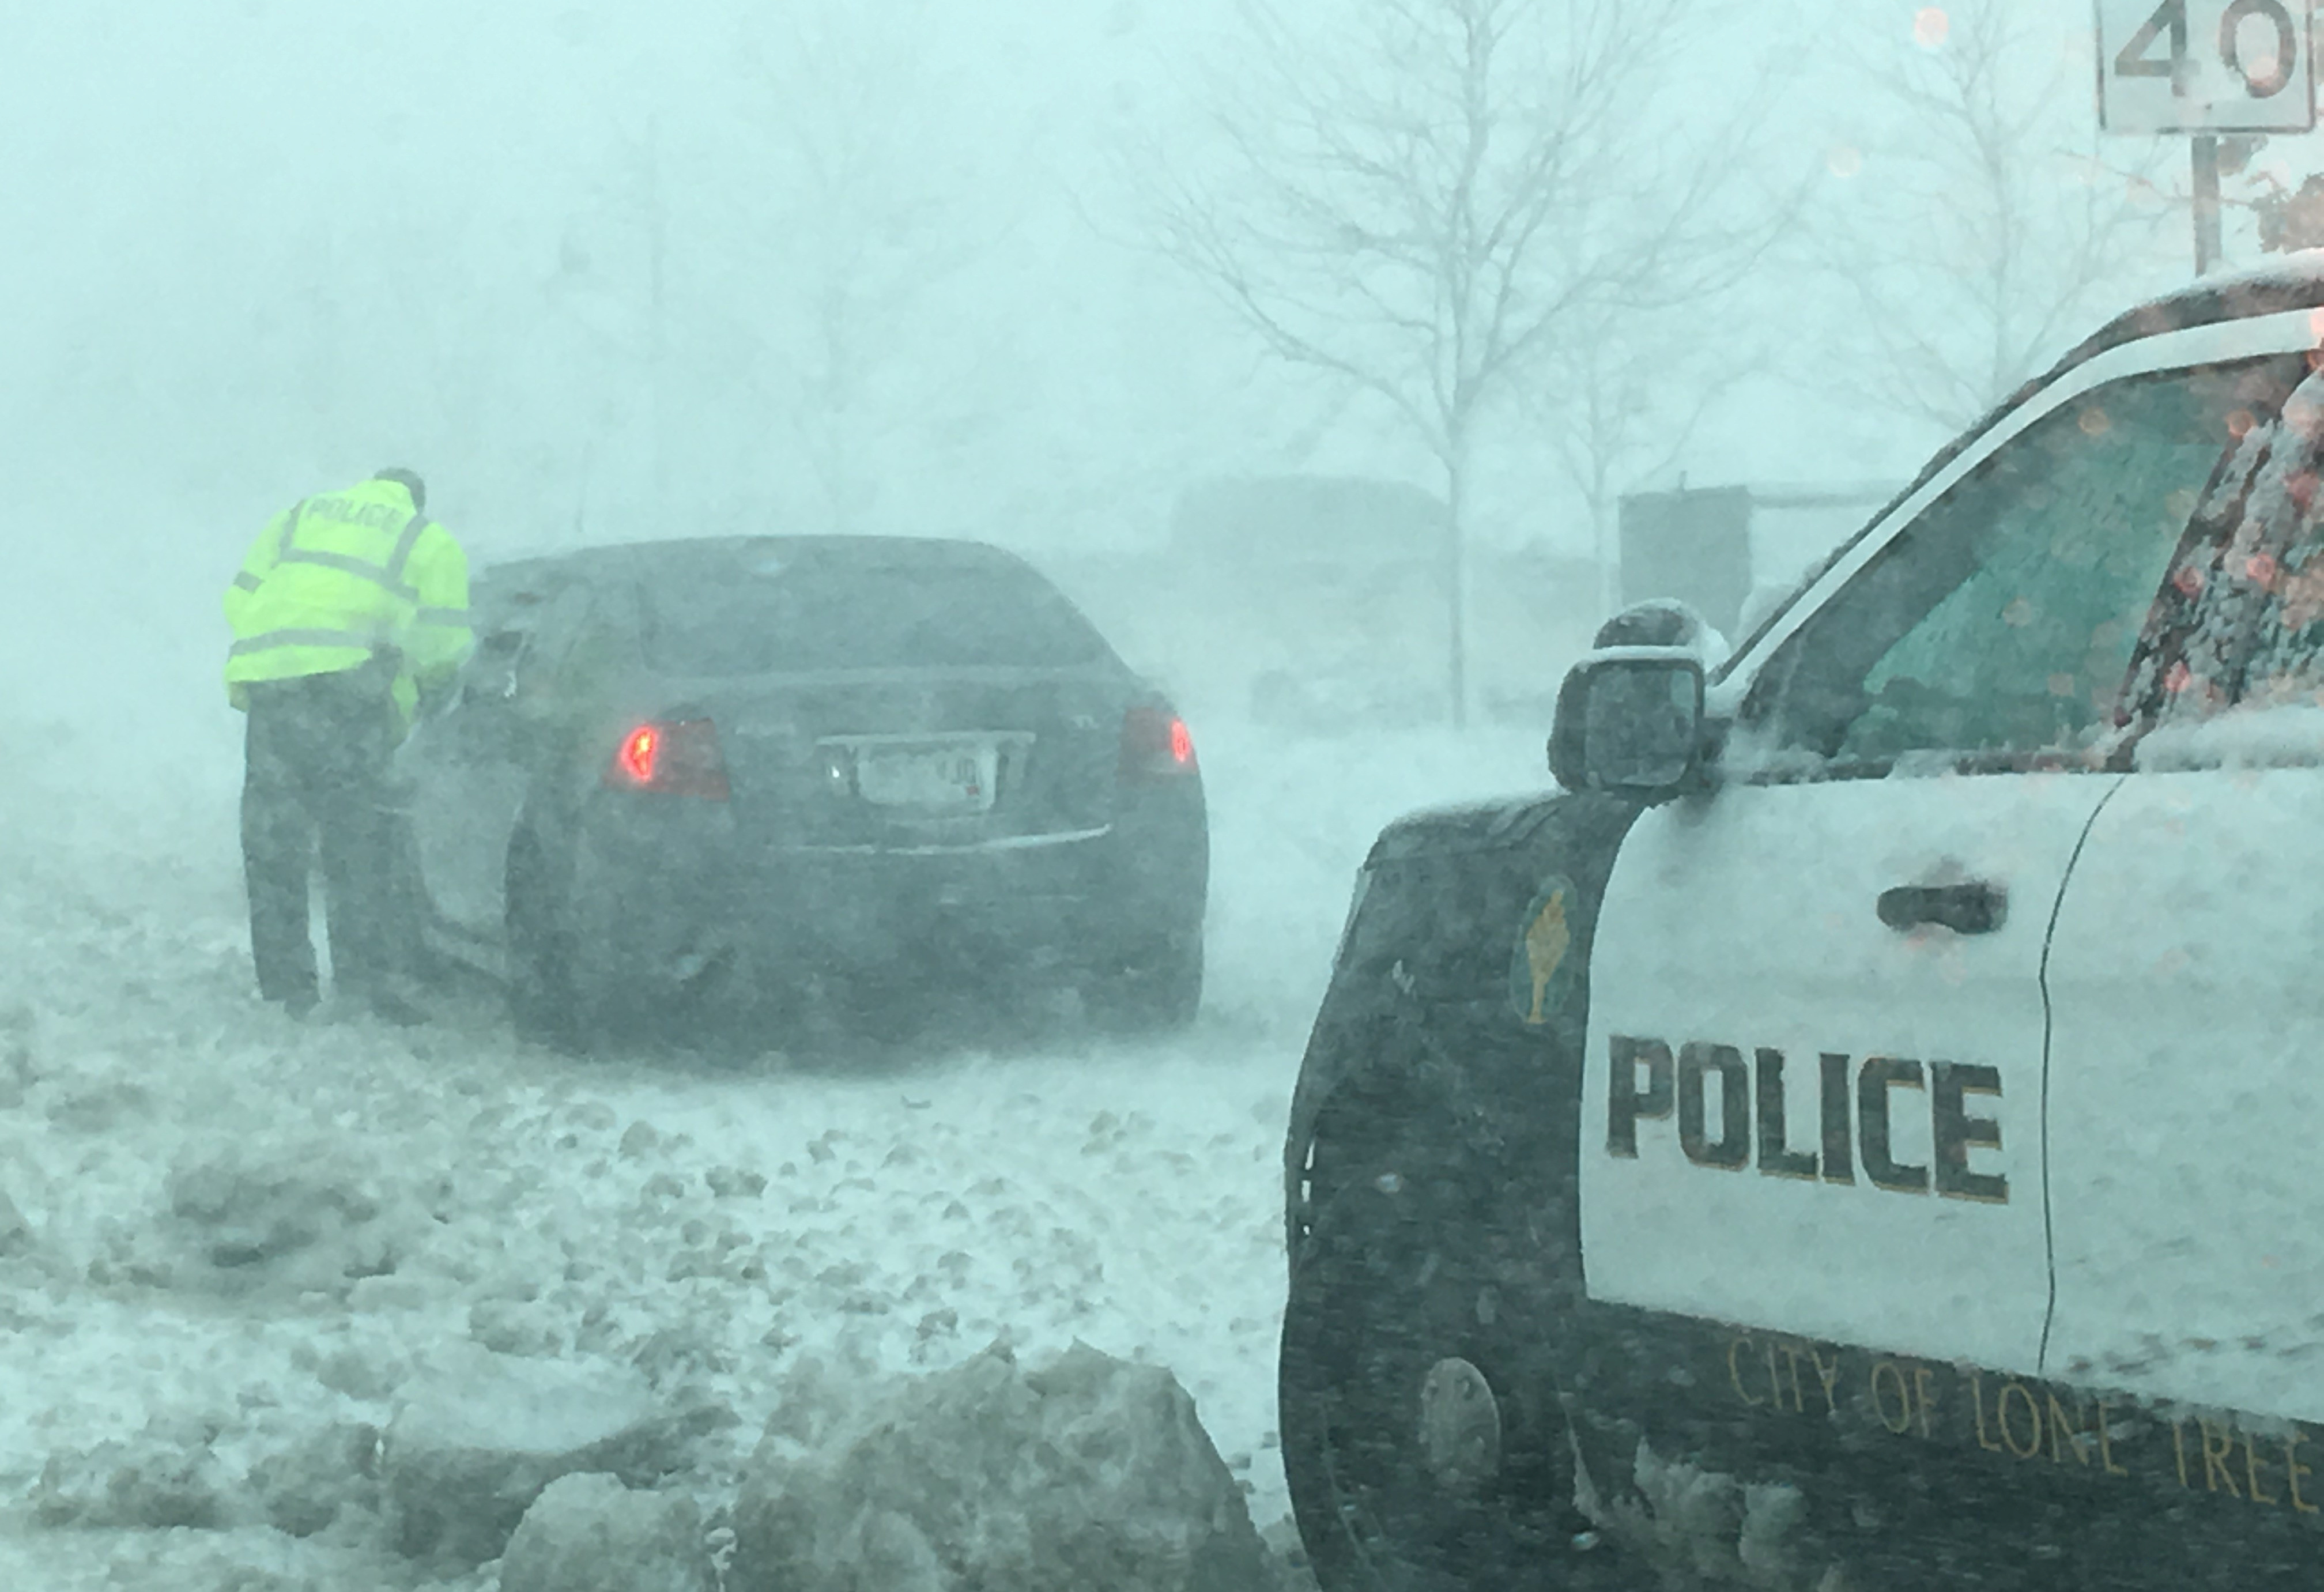 A policeman in Lone Tree, Colo., talks to a driver as snow clogs the towns roads, caught in a later winter storm known as a bomb cyclone.